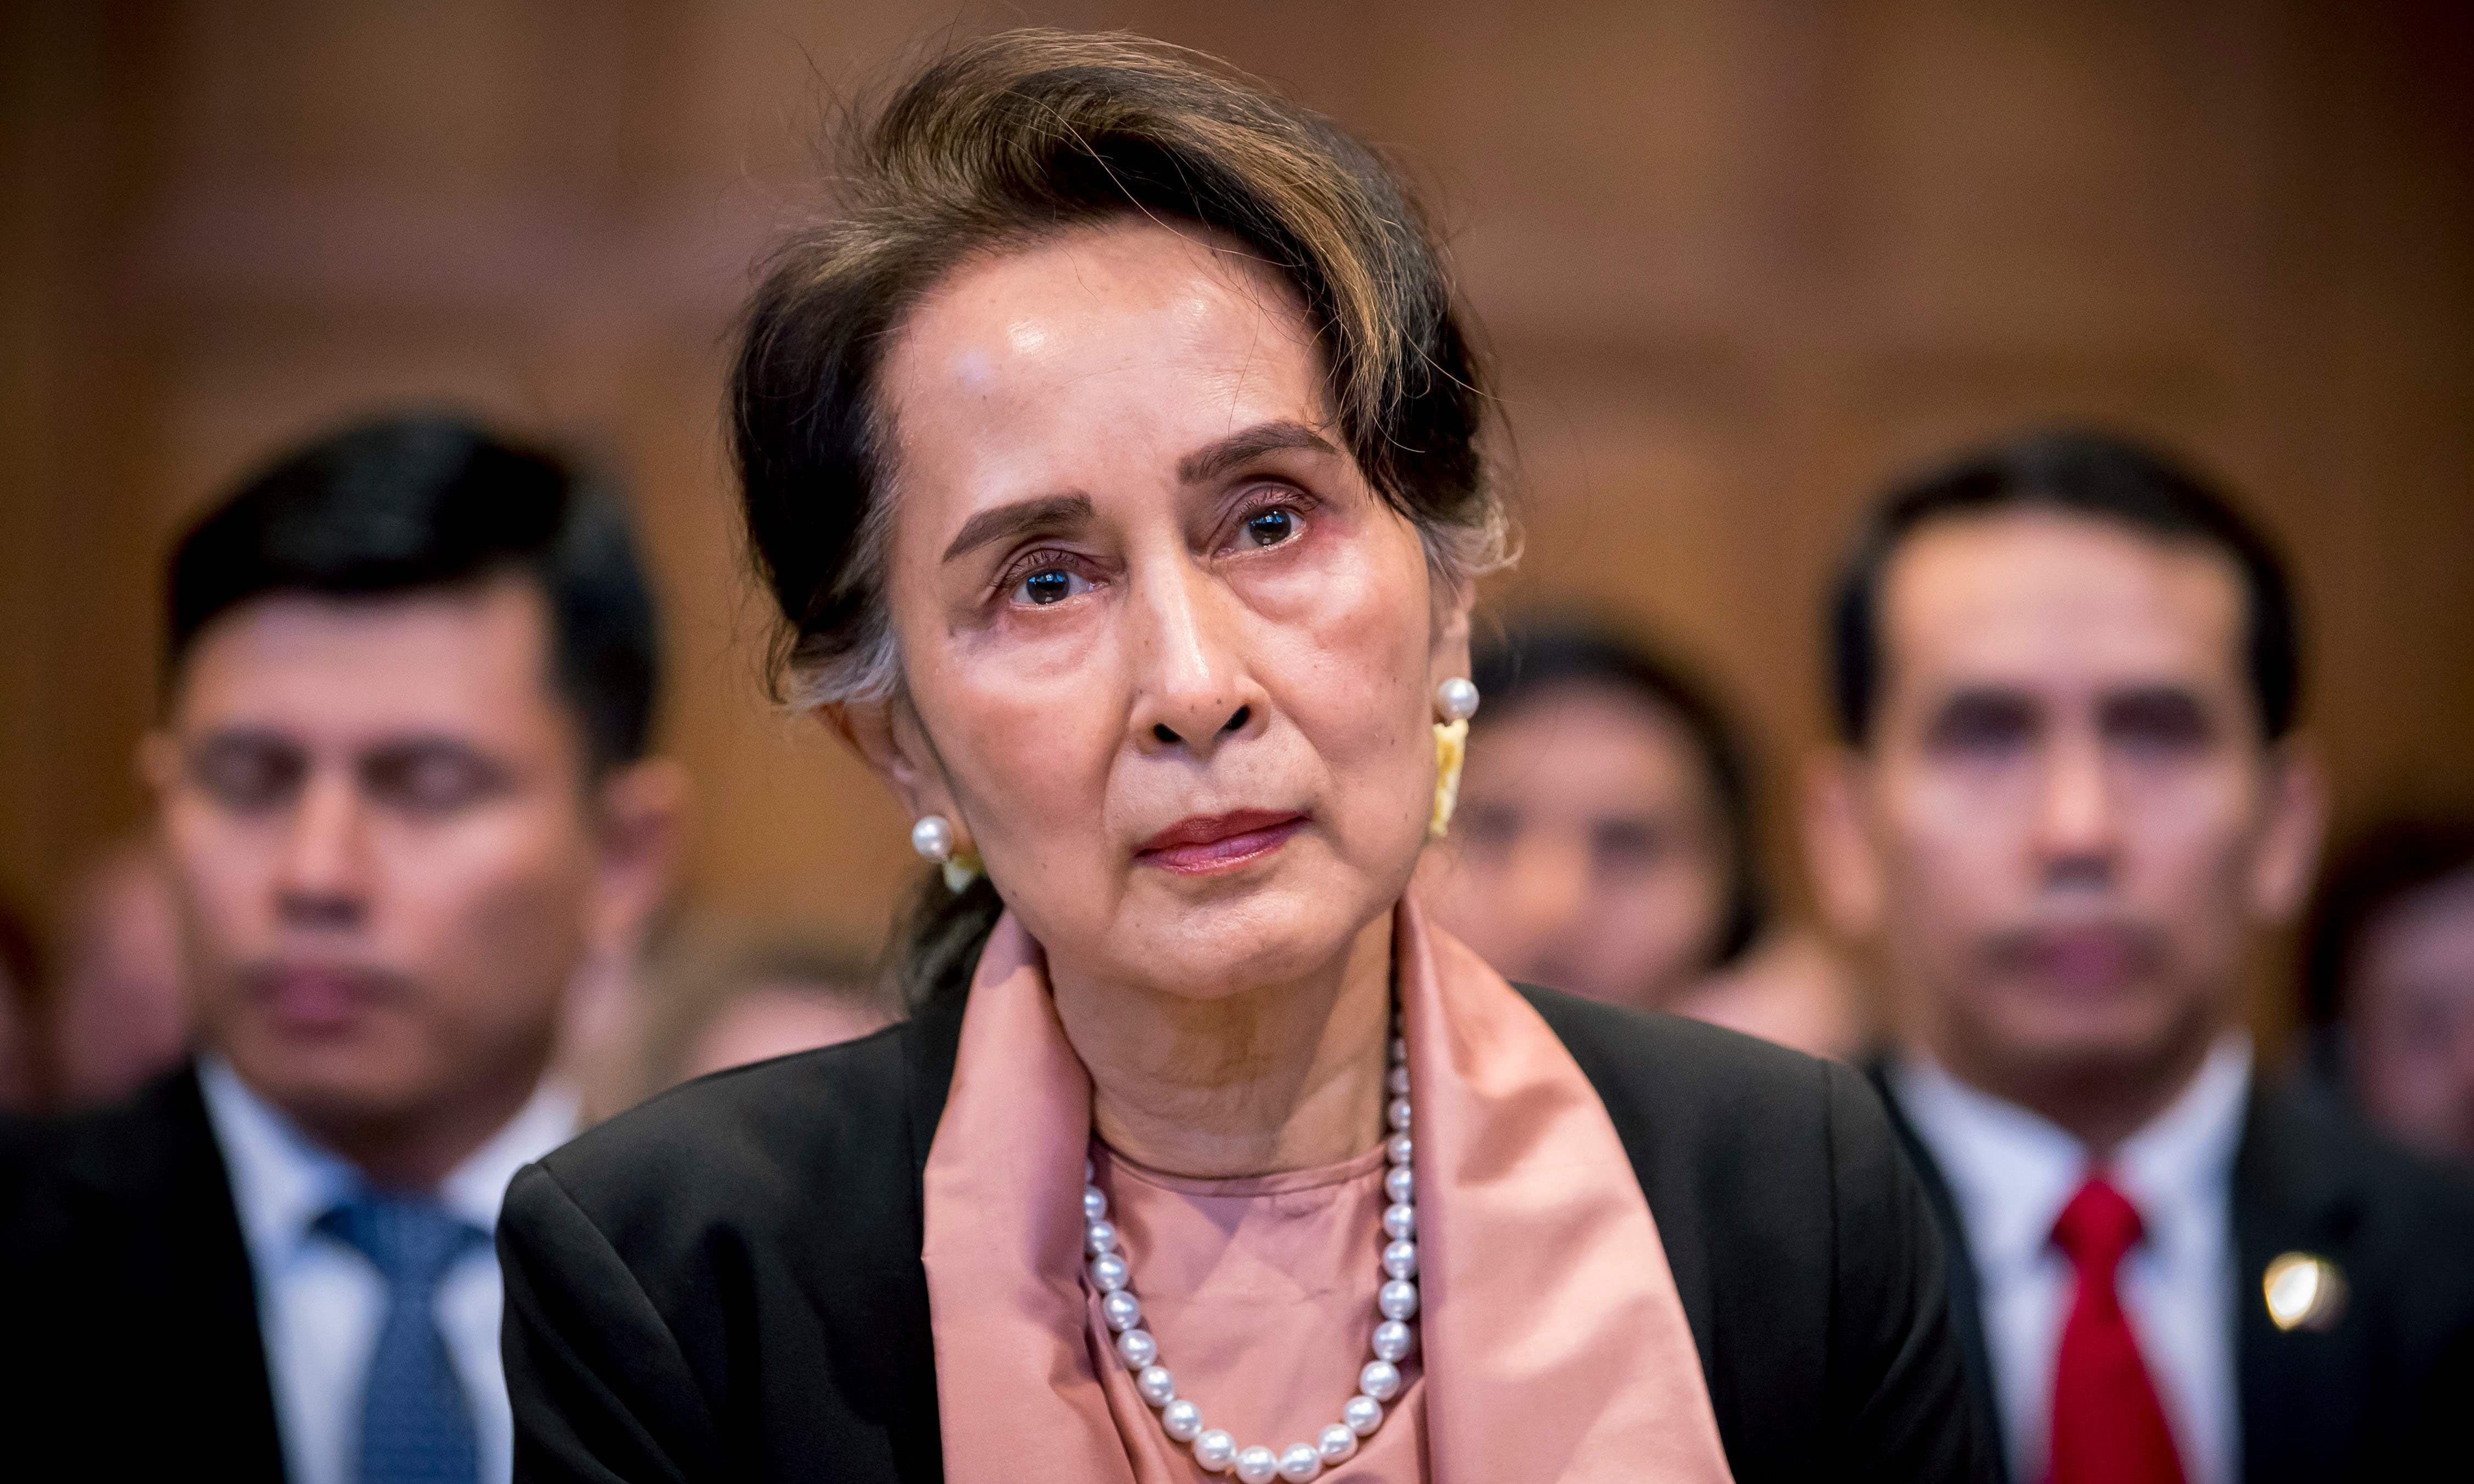 Myanmar's State Counsellor Aung San Suu Kyi attending the start of a three-day hearing on the Rohingya genocide case before the UN International Court of Justice at the Peace Palace of The Hague. — AFP/File